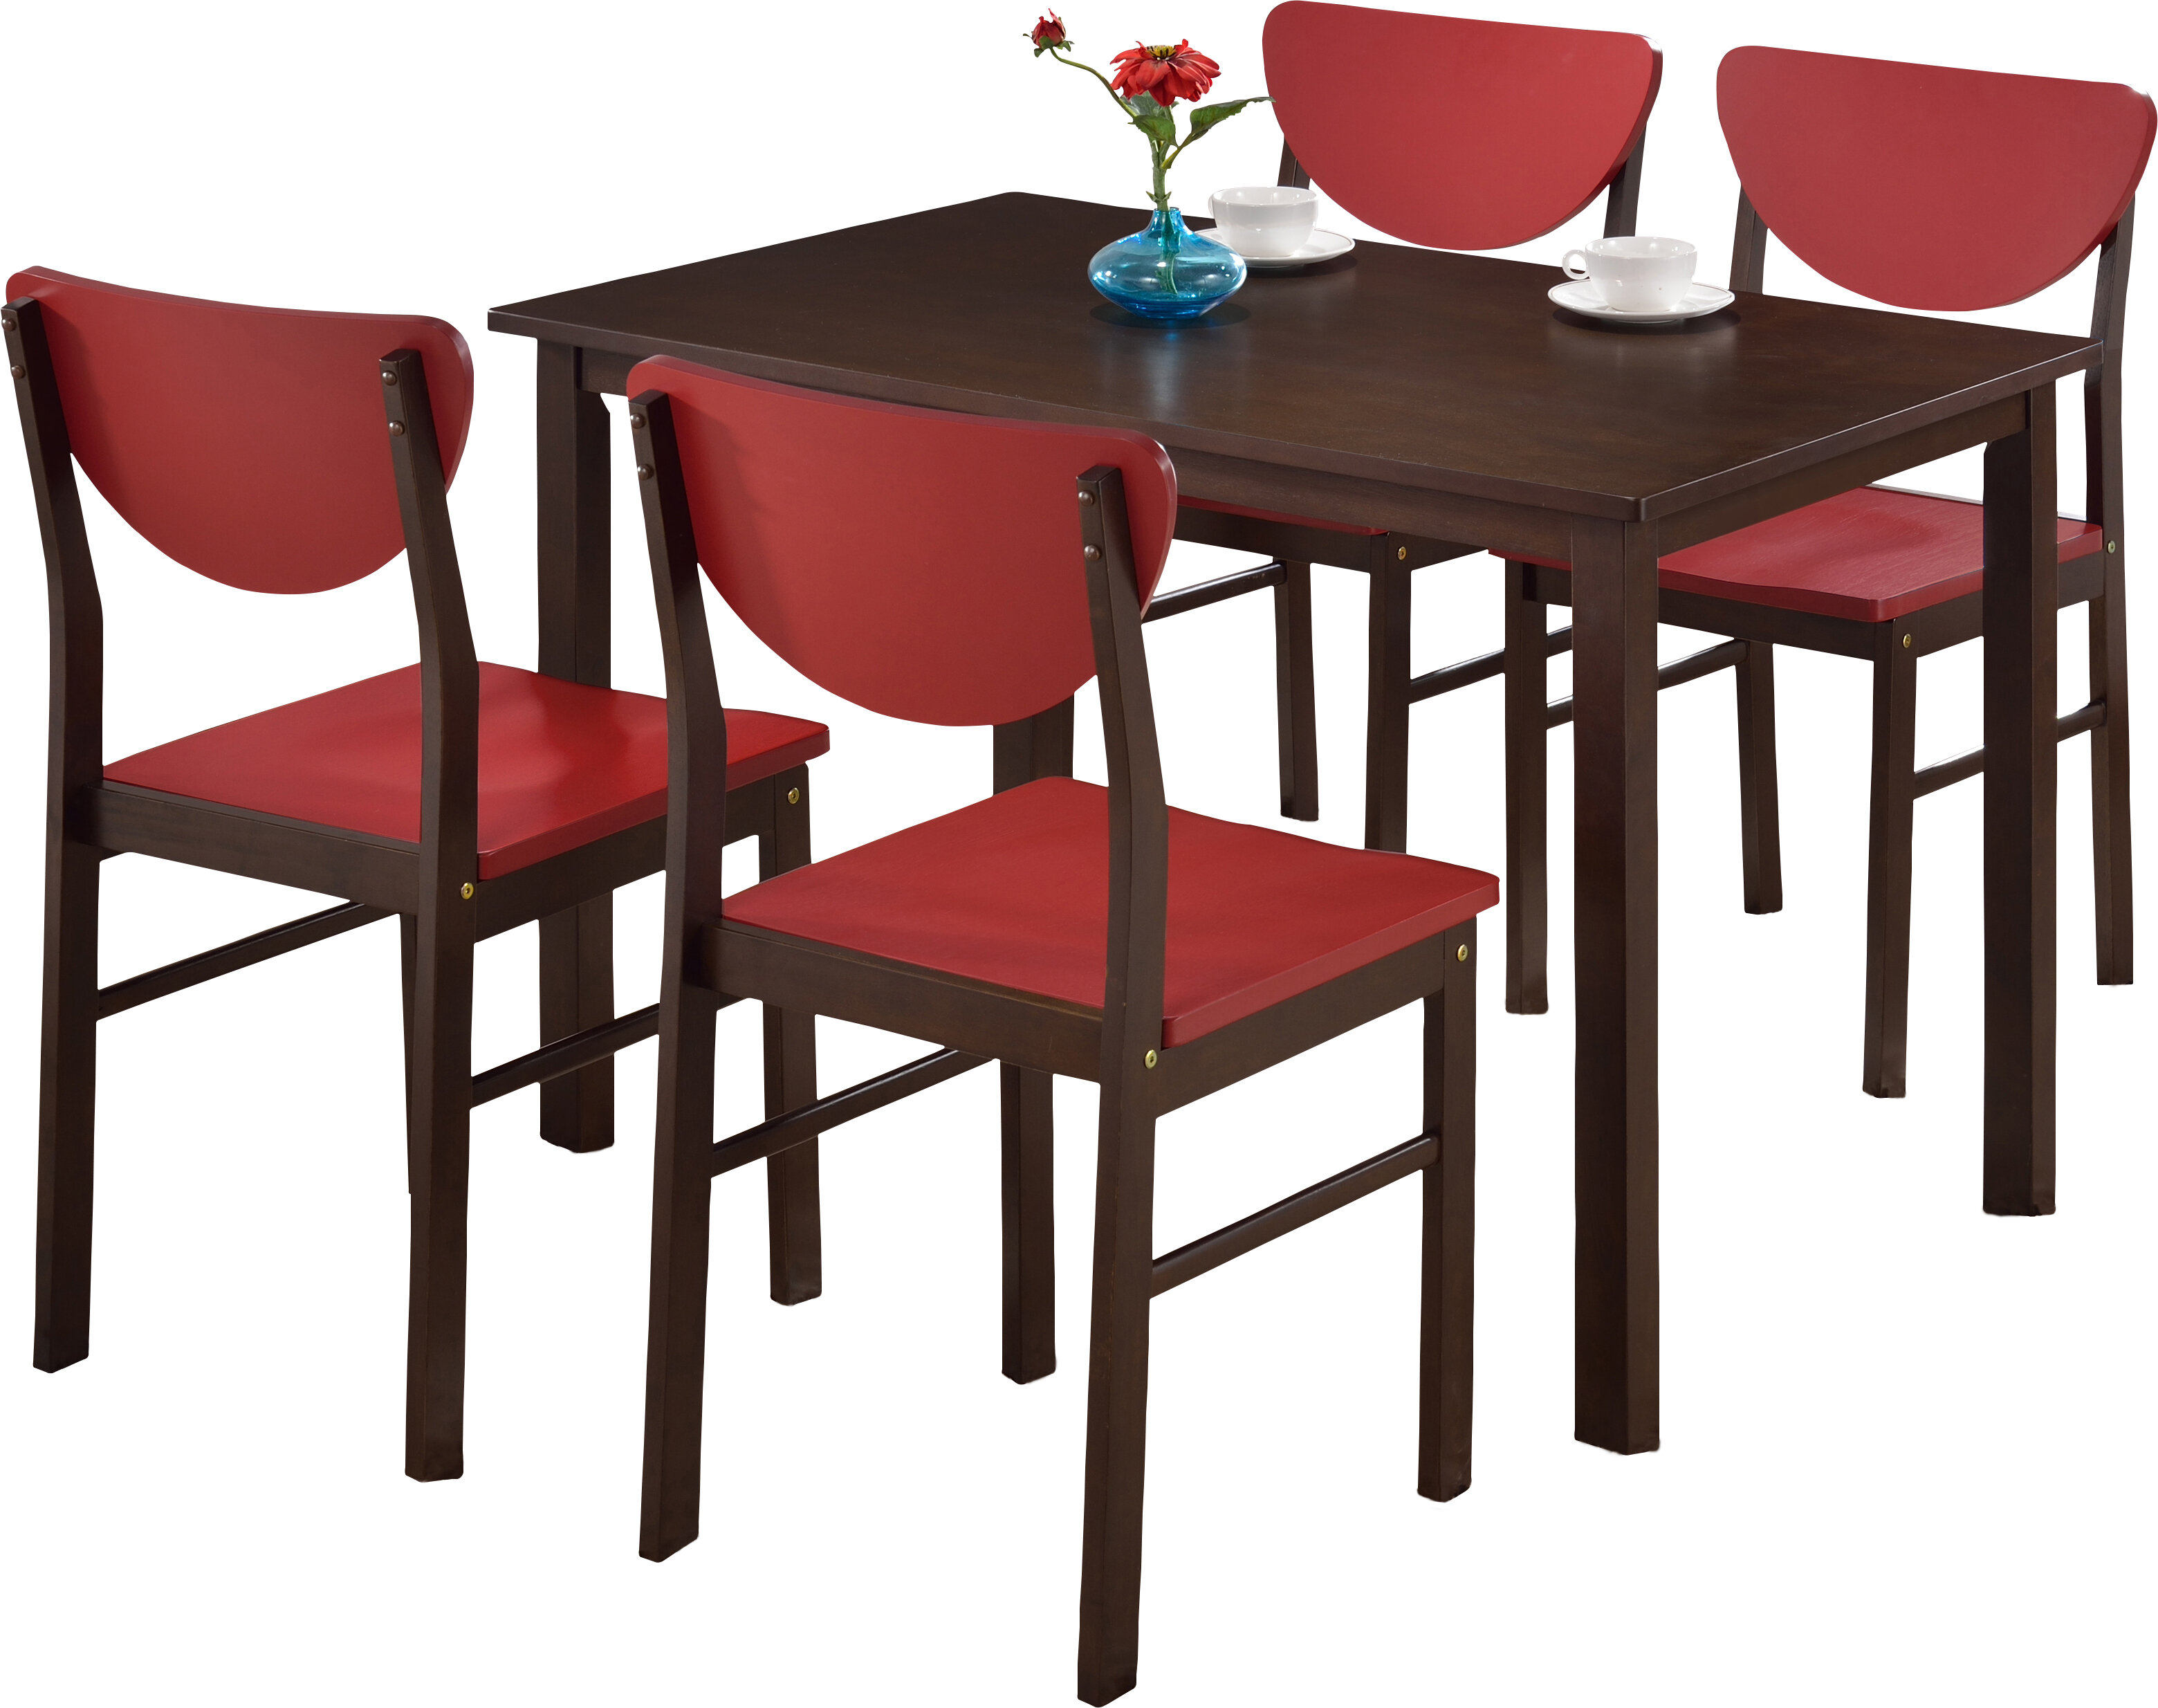 Alesha 5 Piece Dining Set With Regard To Most Recently Released Linette 5 Piece Dining Table Sets (View 9 of 20)